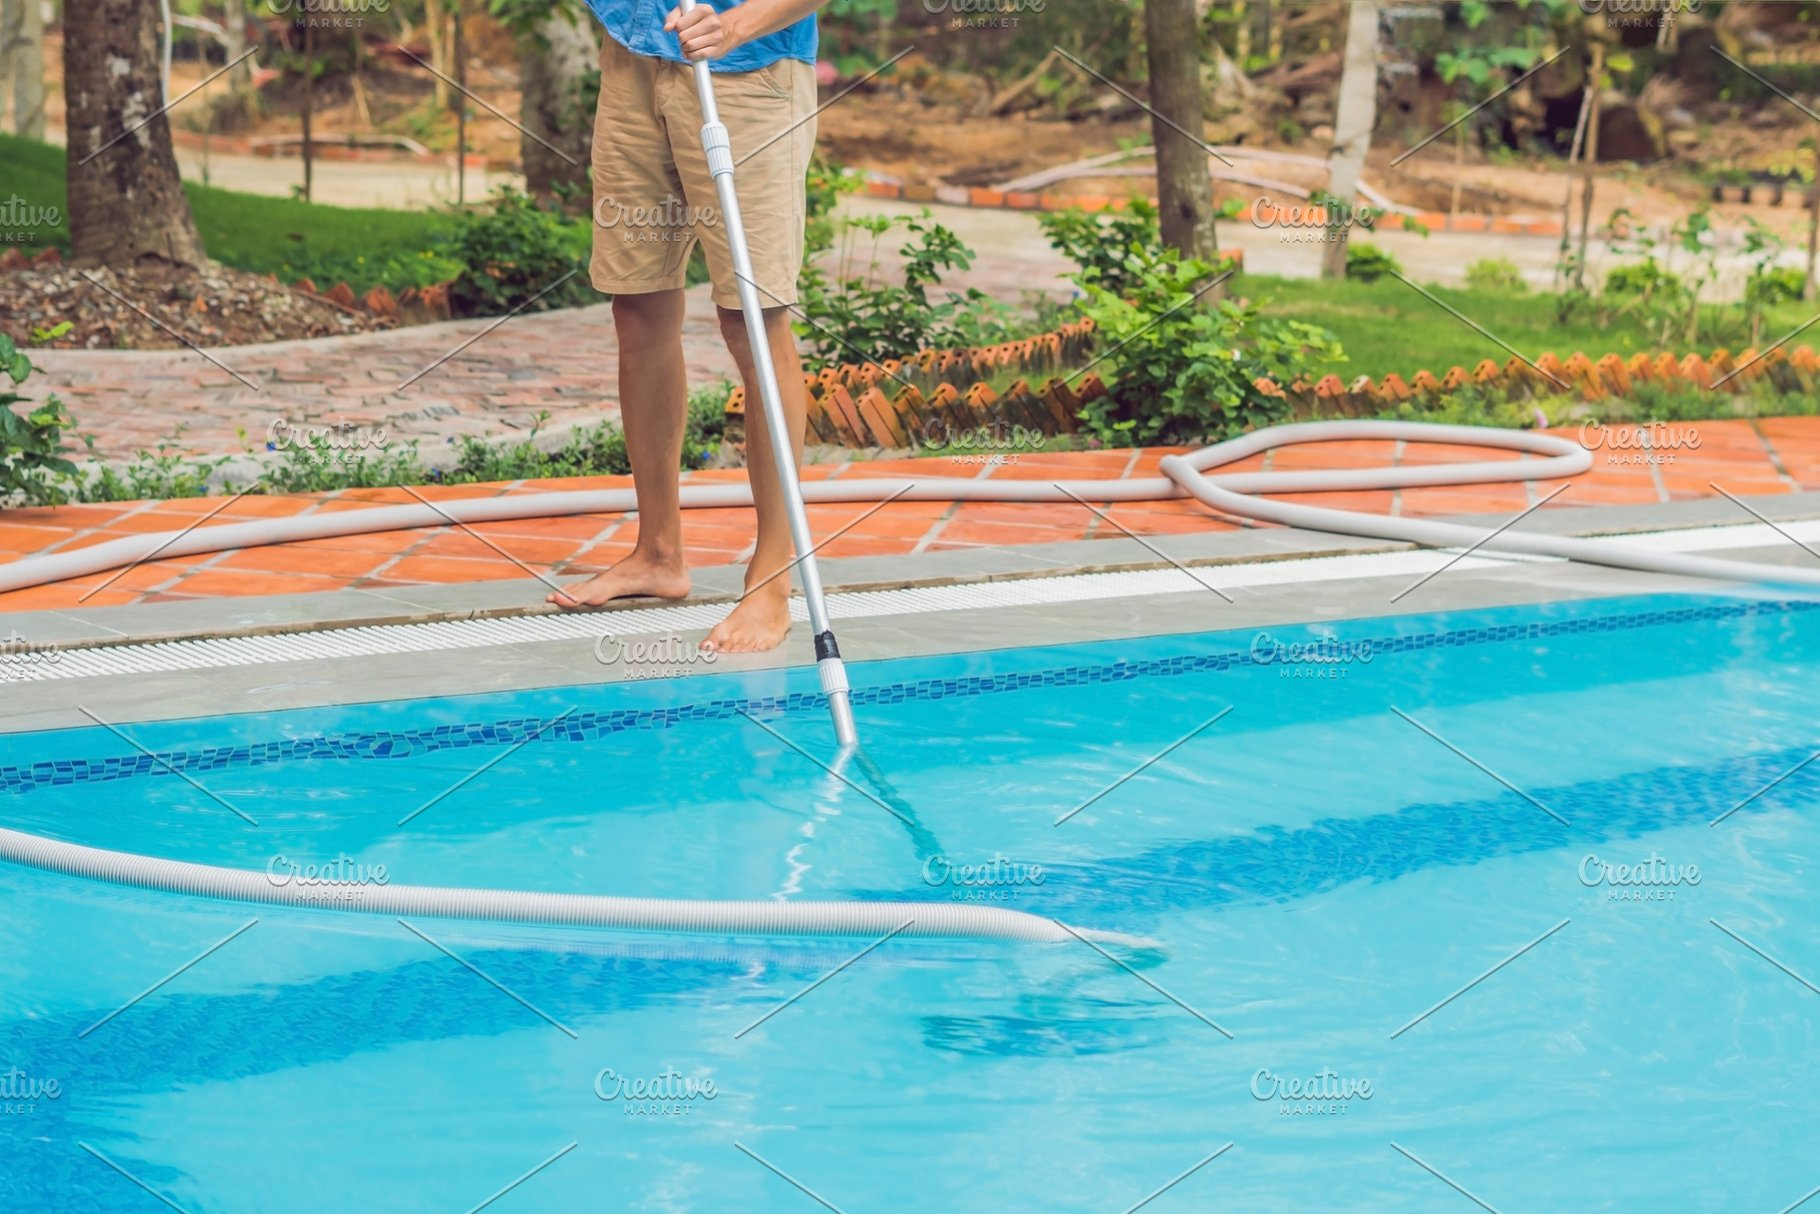 Cleaner of the swimming pool . Man ~ Nature Photos ~ Creative Market